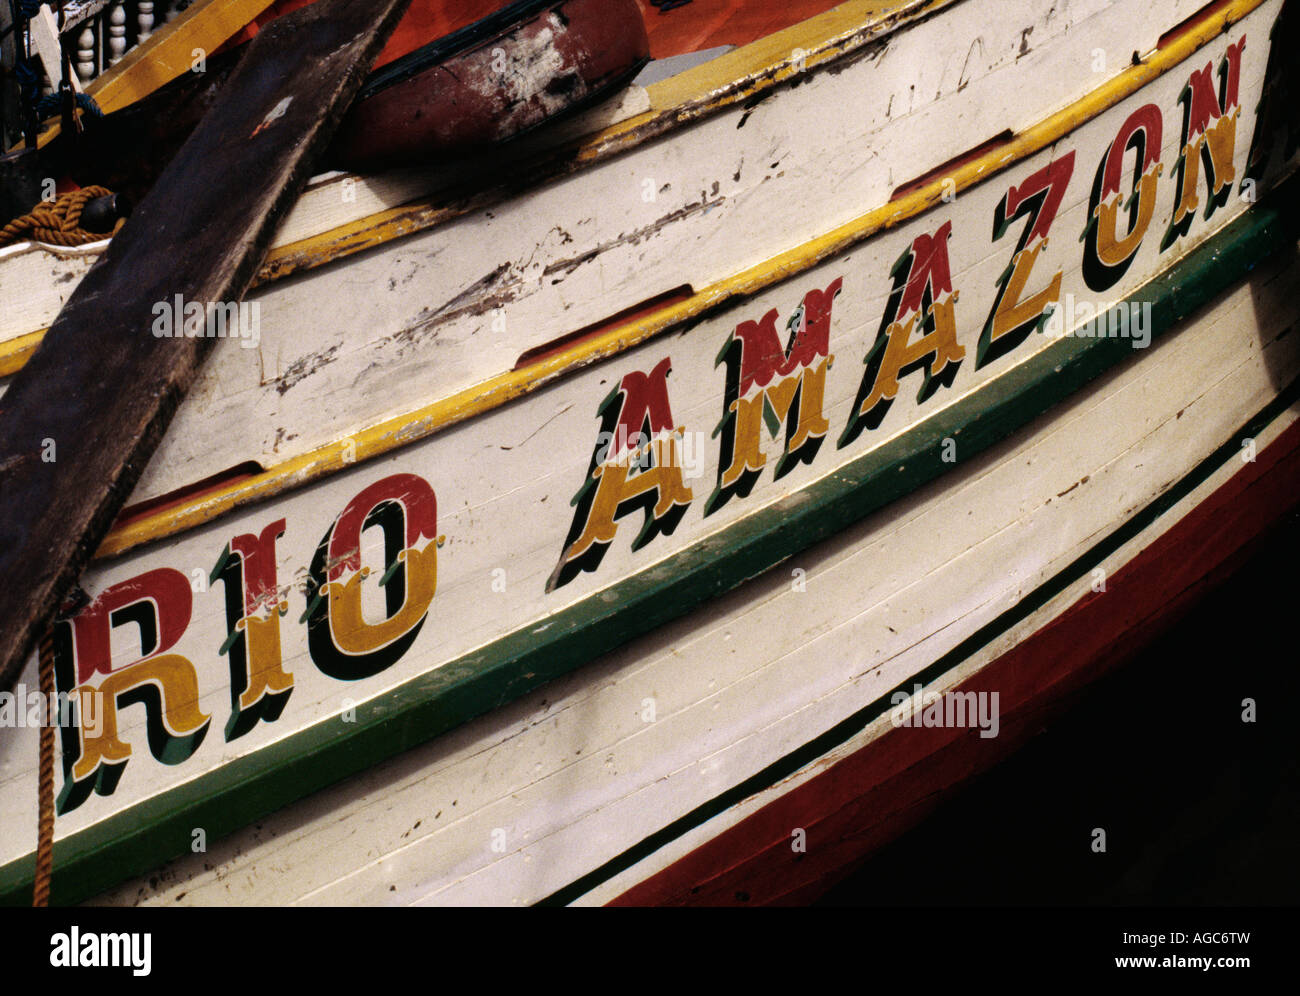 Brazil, Belem, Fishing boat called Rio Amazon - Stock Image